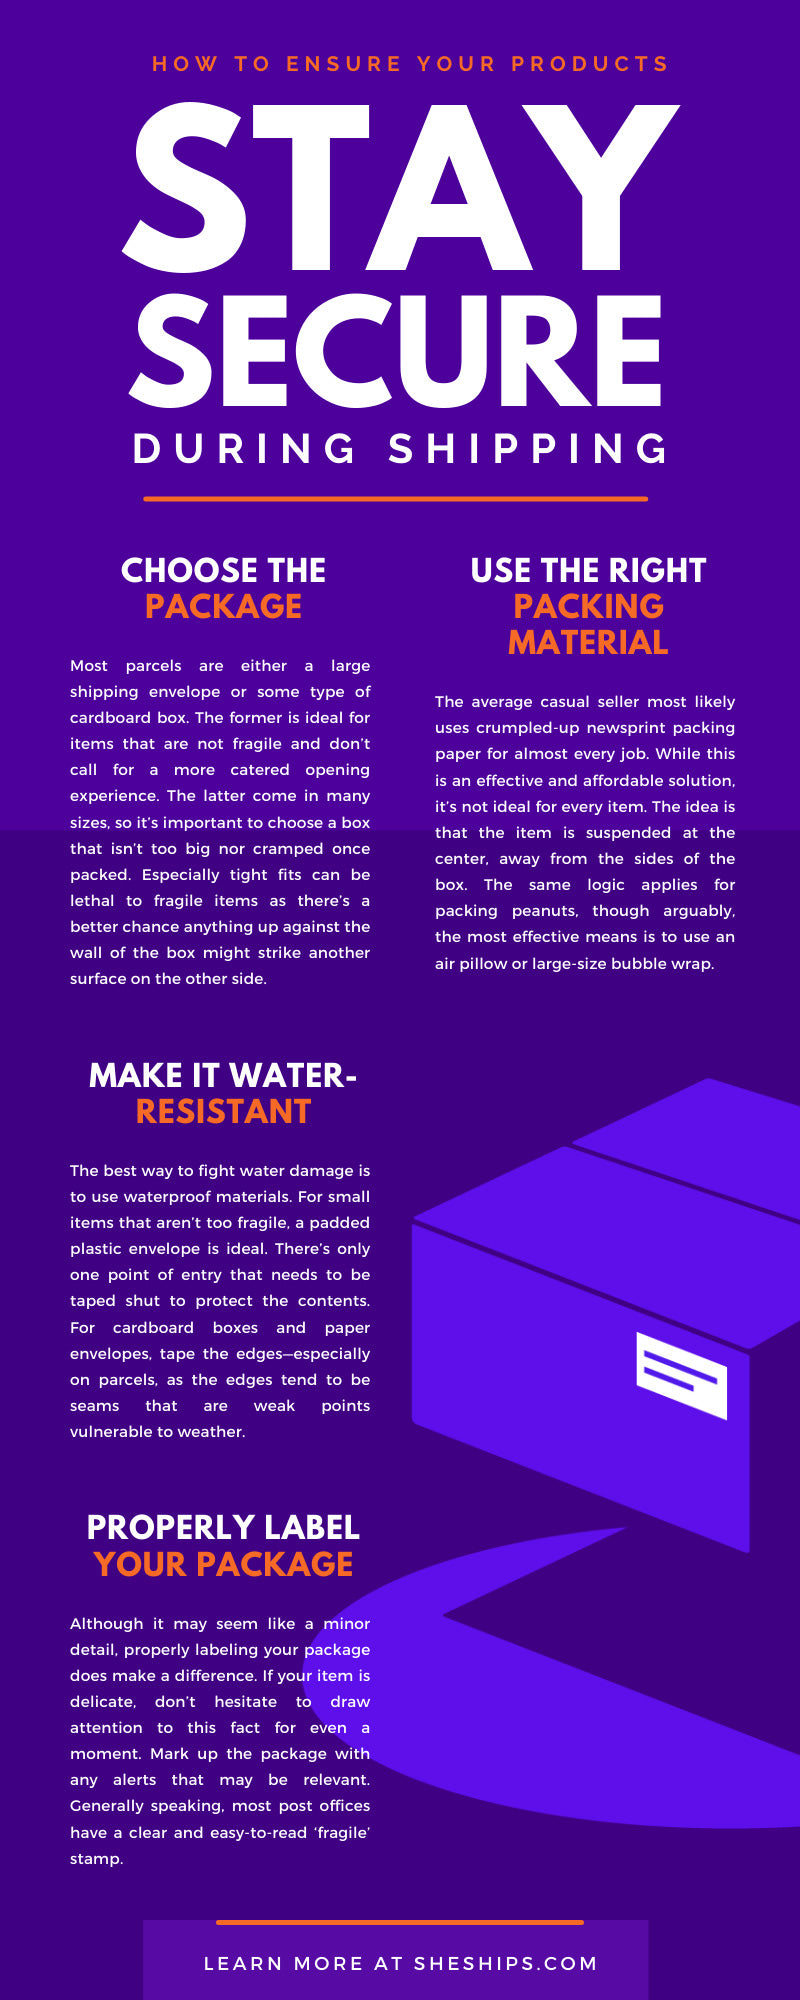 How To Ensure Your Products Stay Secure During Shipping